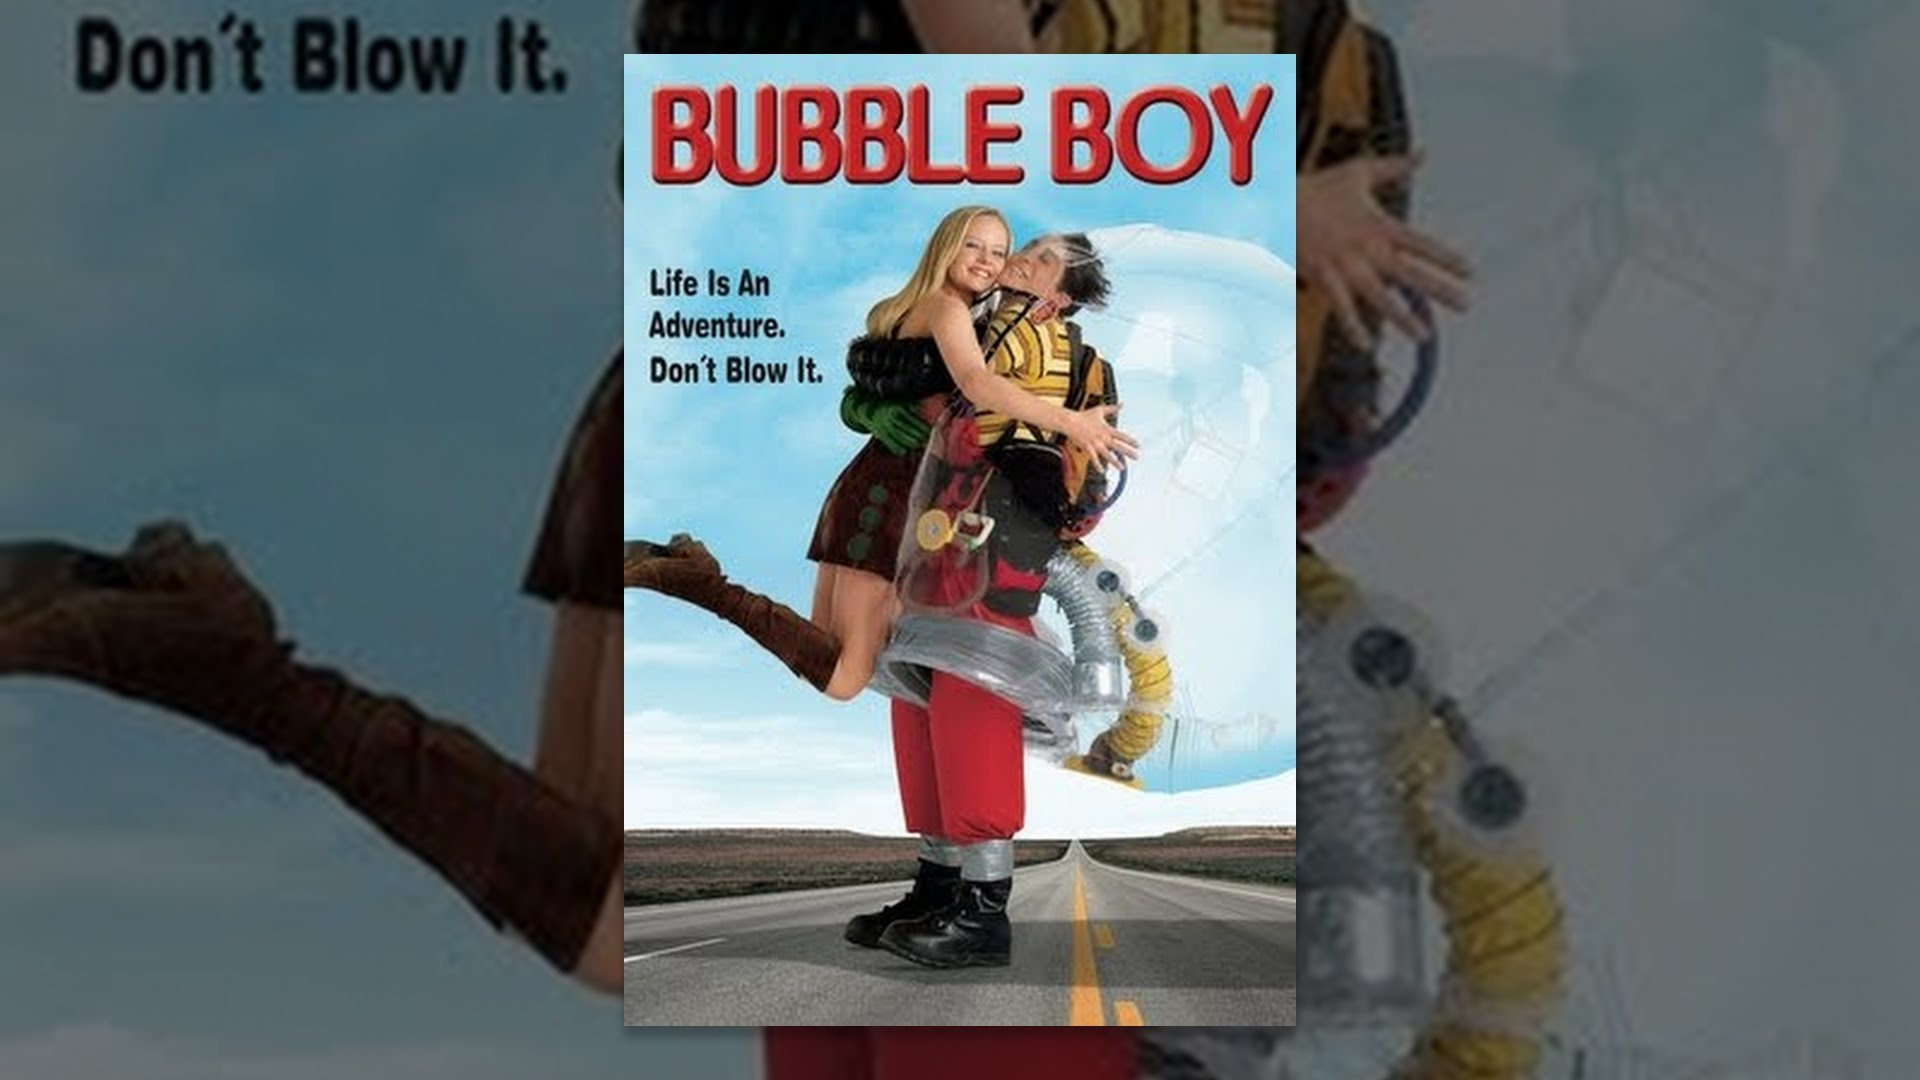 the boy in the bubble 23082014 complete chords / short tabs for basic rhythmic pattern and voicings / link to demo recording so one can hear what the tab sounds like.